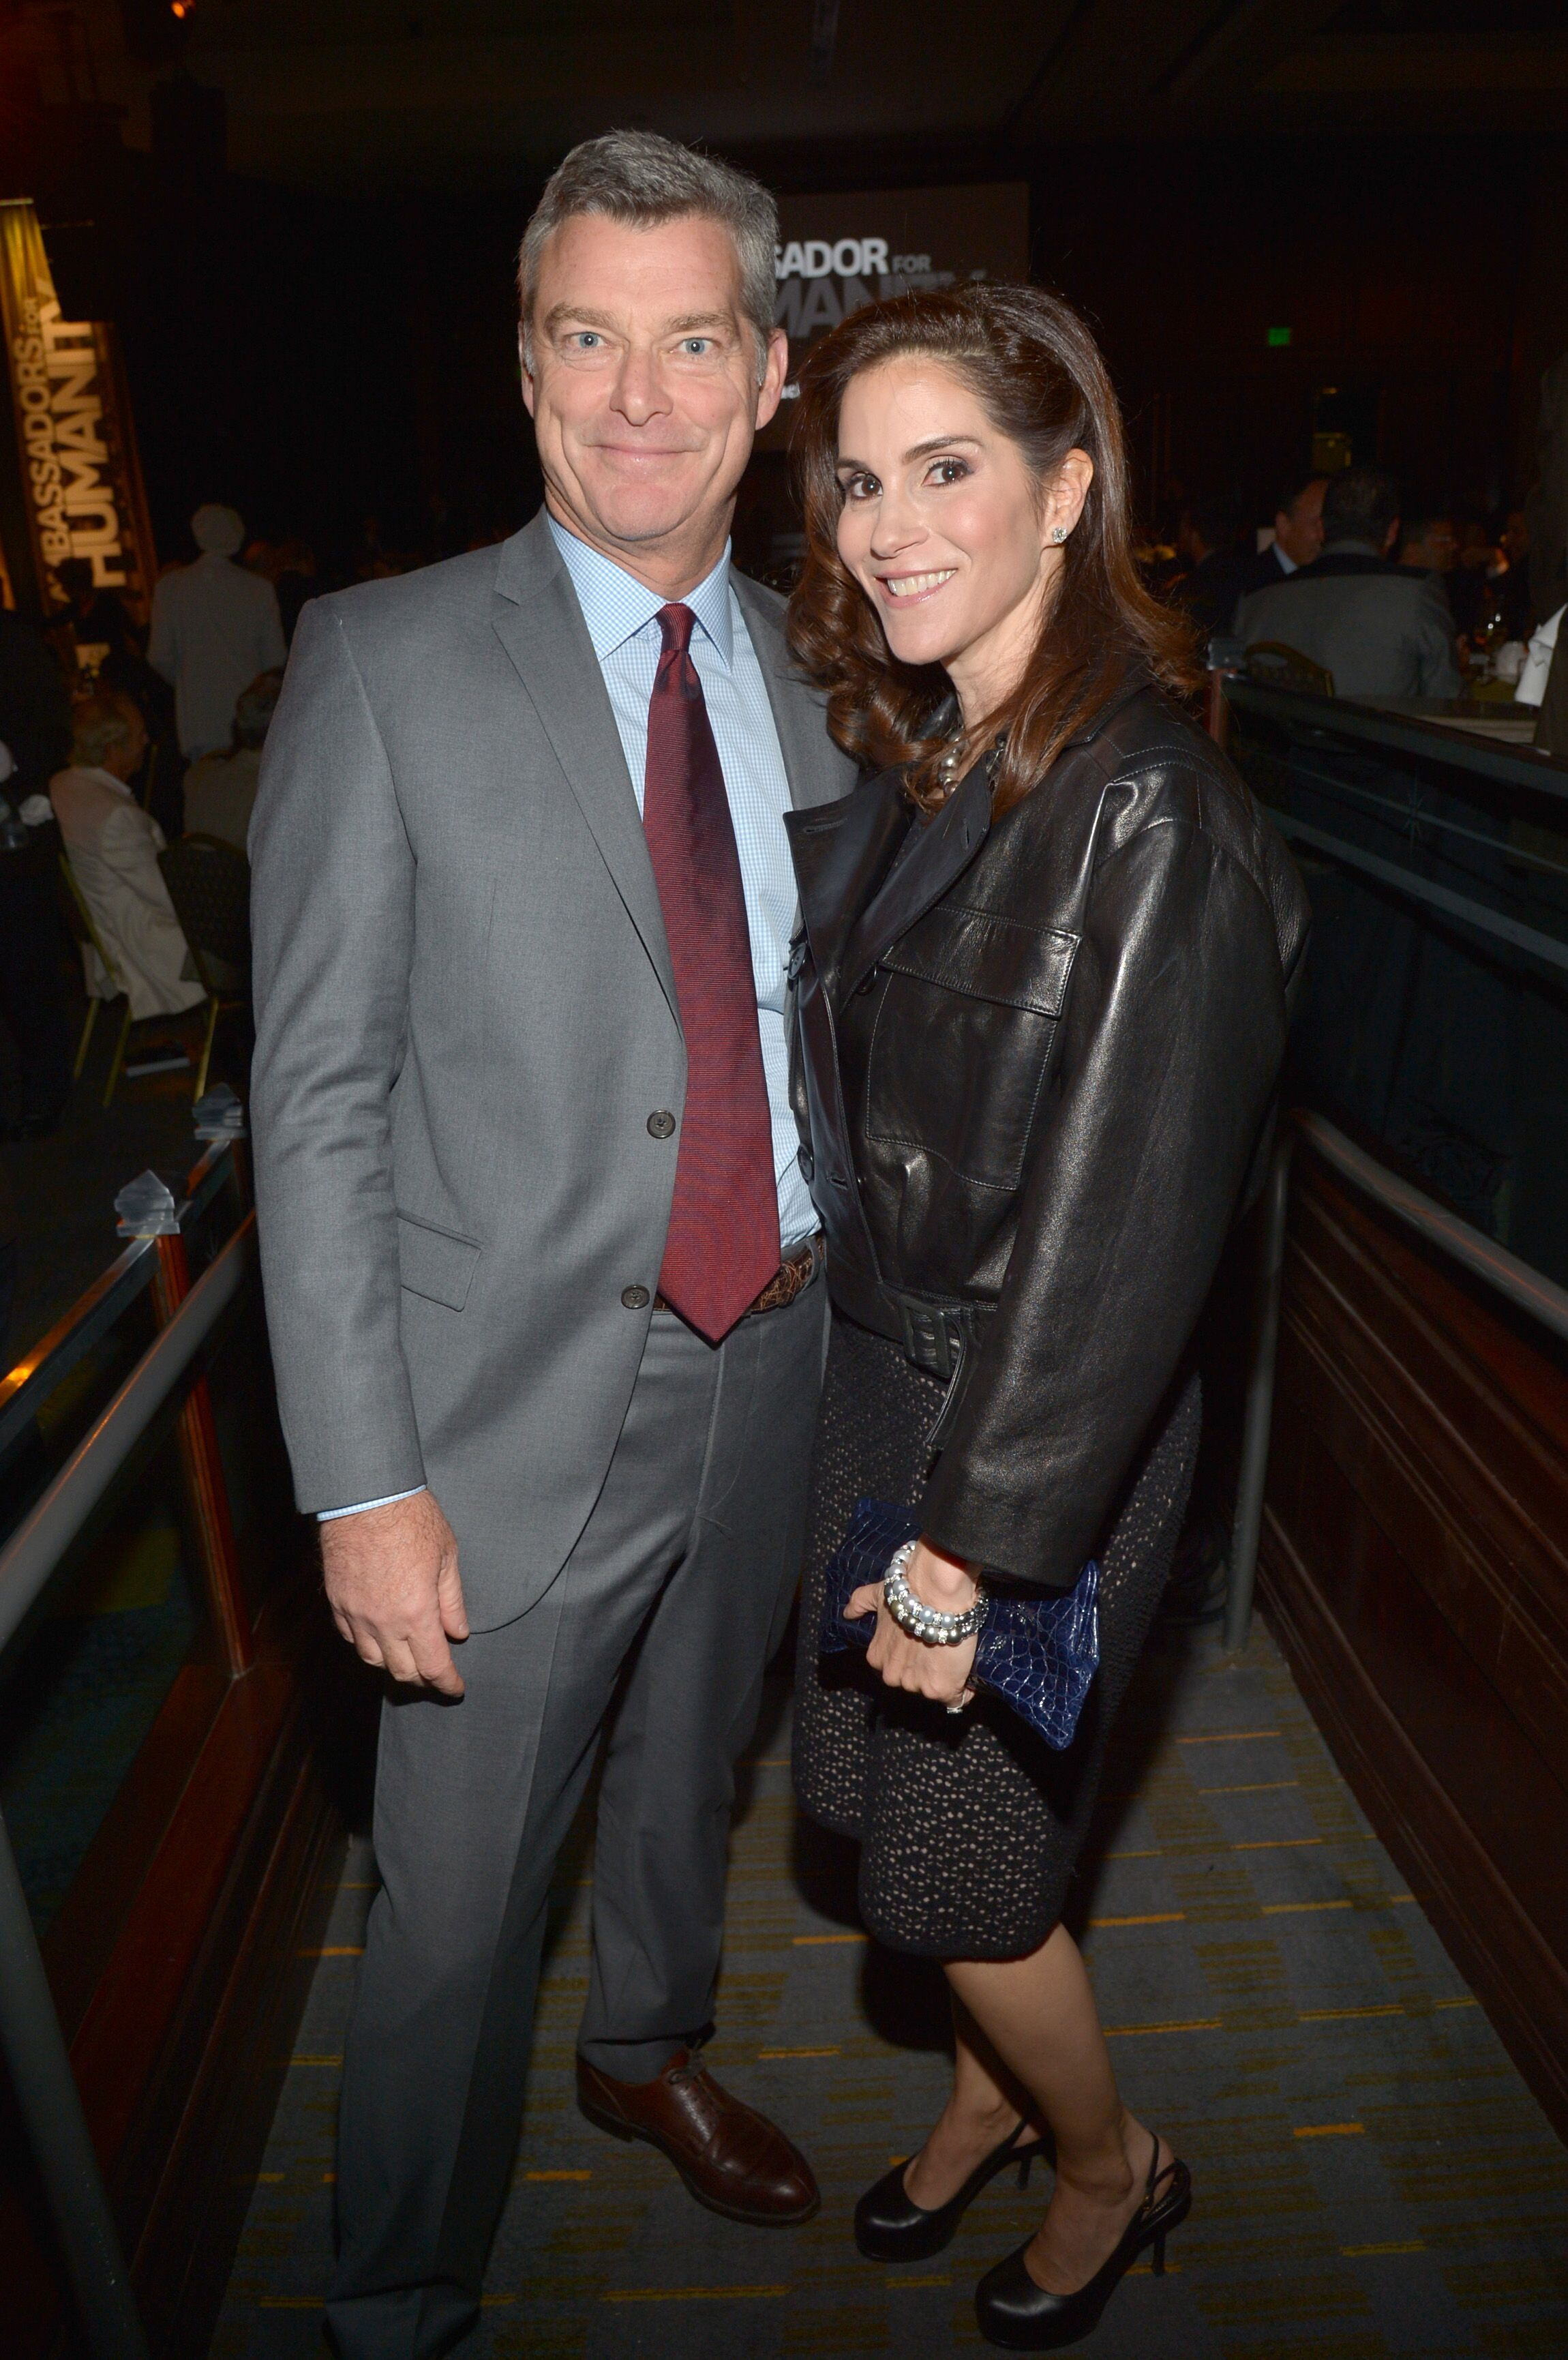 Antony Ressler and actress Jami Gertz attend USC Shoah Foundation's 20th Anniversary Gala on May 7, 2014. | Source: Getty Images